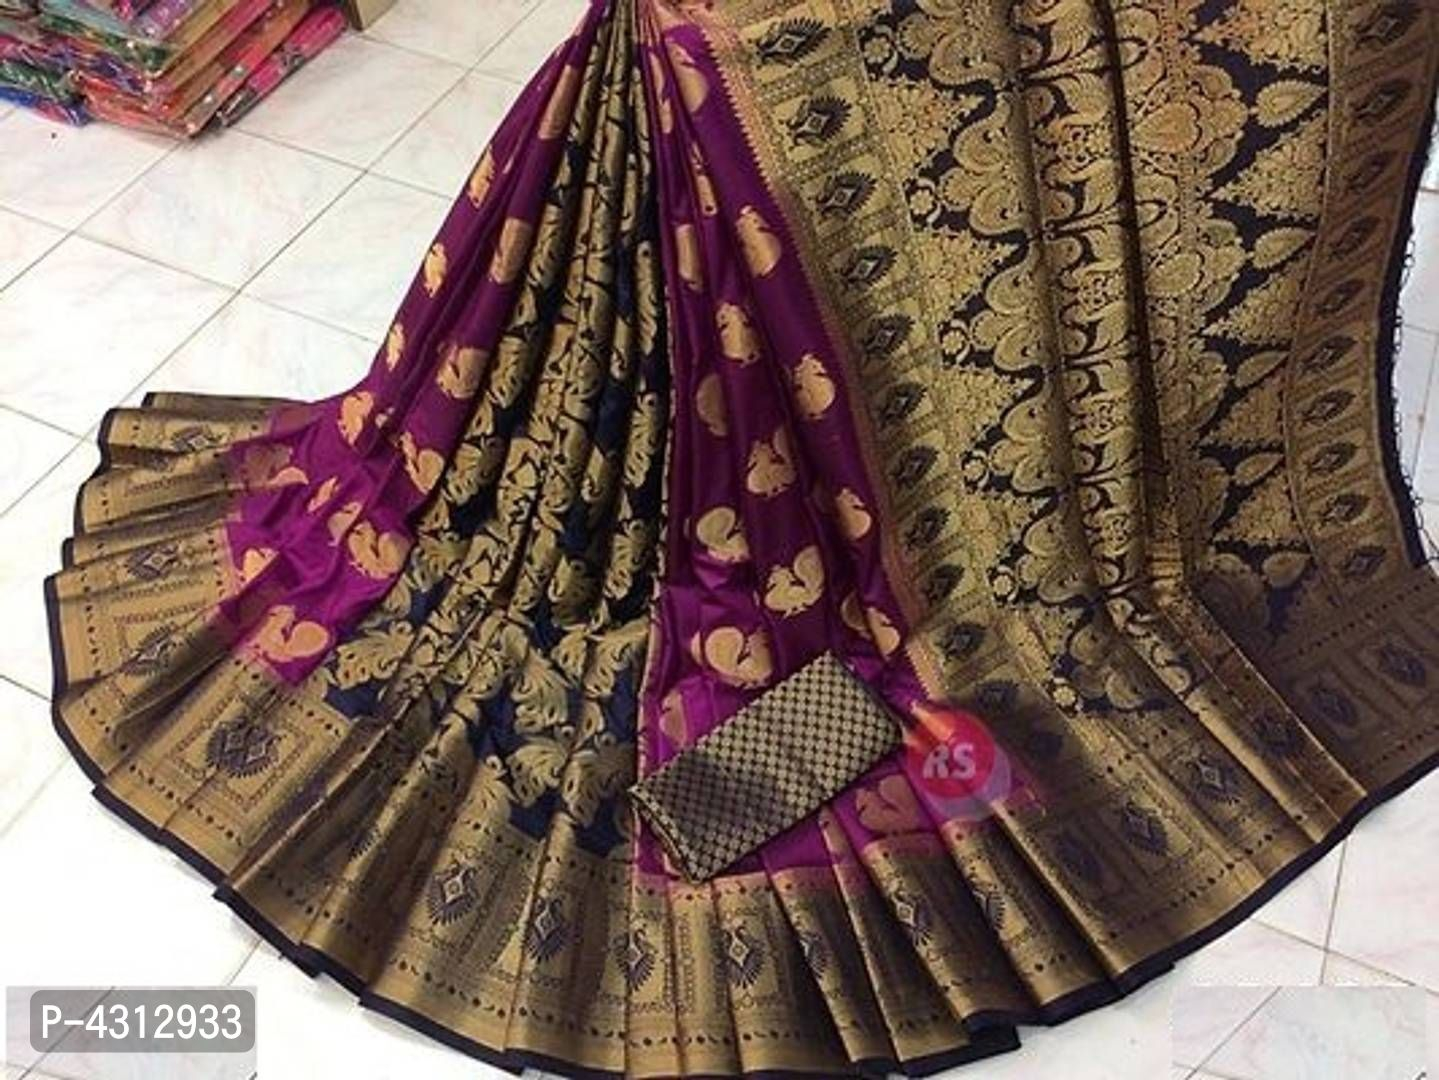 Silk Sarees: What are the benefits?